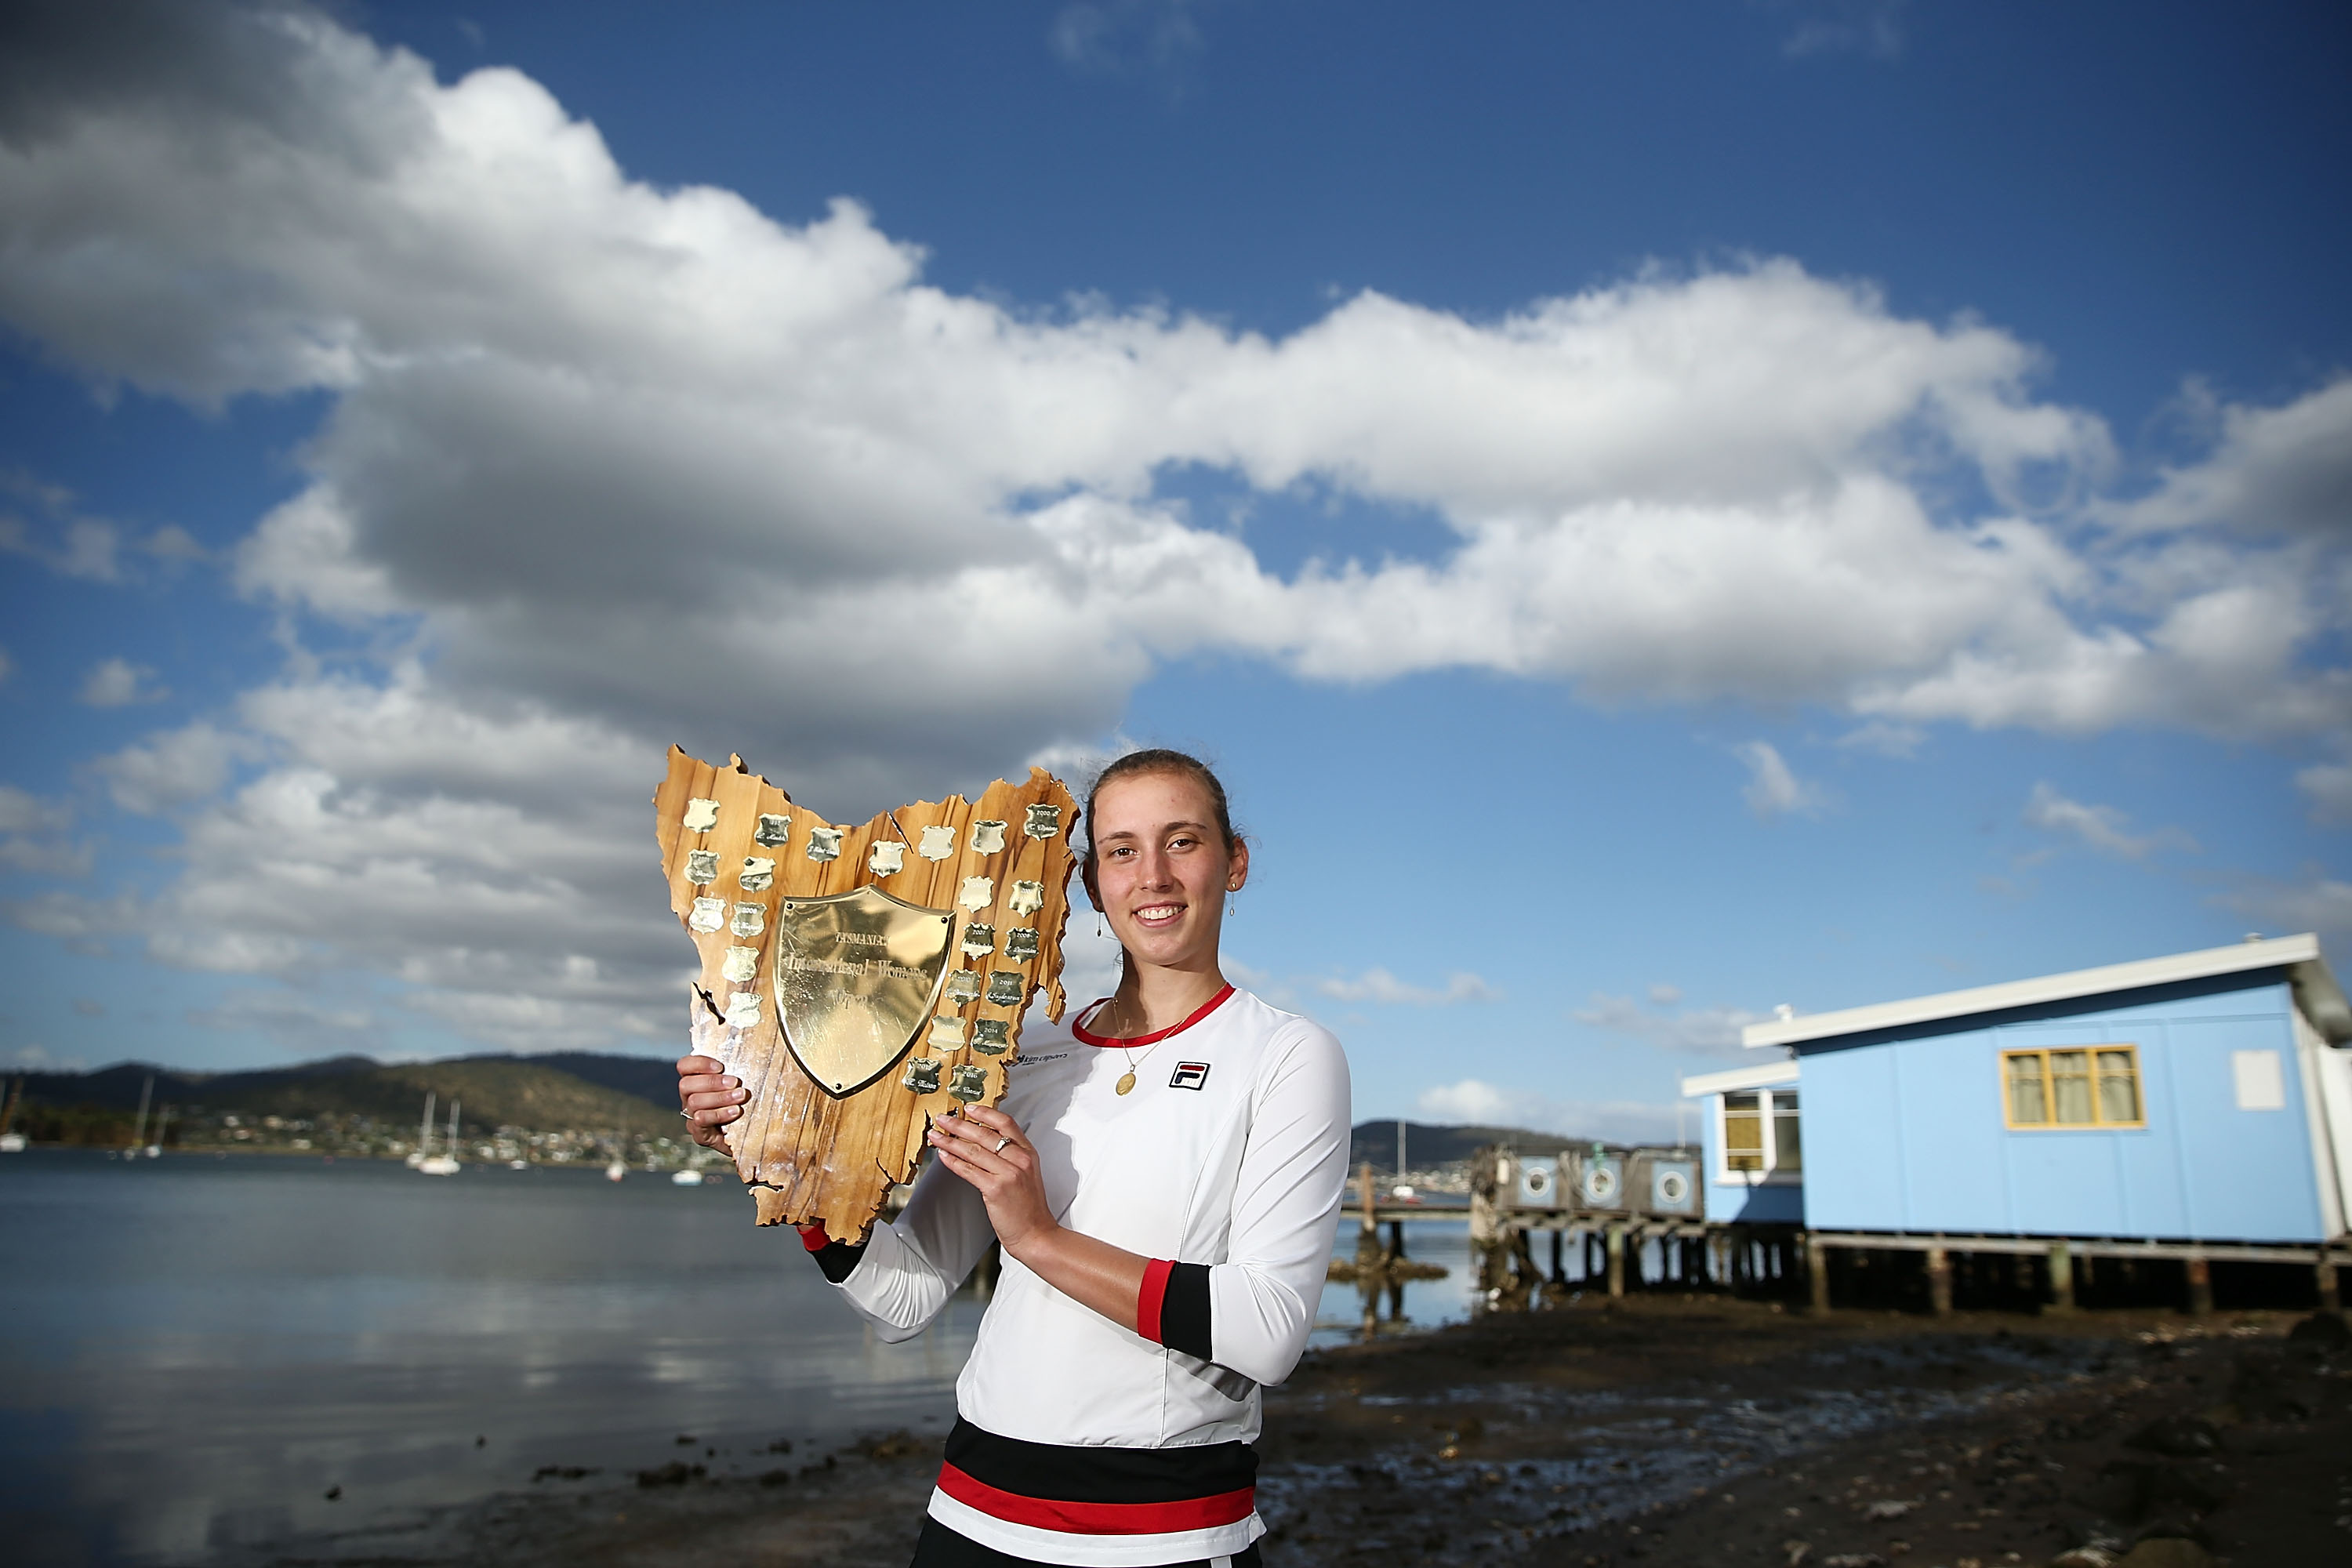 CHAMPION SHOOT:  Elise Mertens poses with the winners trophy at Cornelian Bay after her stunning victory; Getty Images